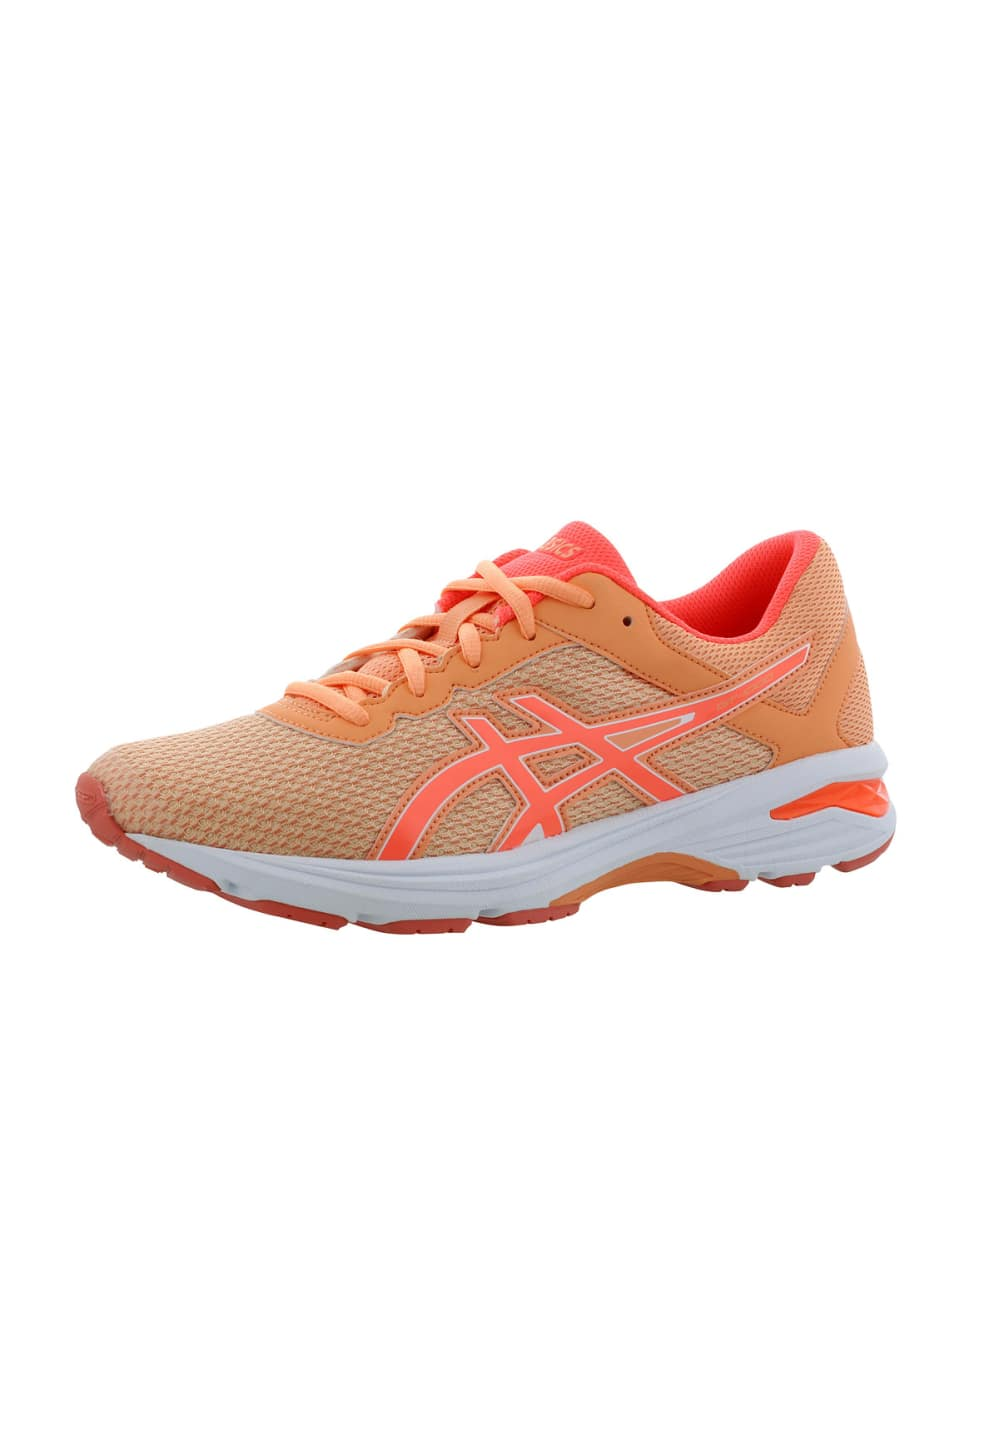 0d245f63f1da ASICS GT-1000 6 GS - Running shoes - Pink